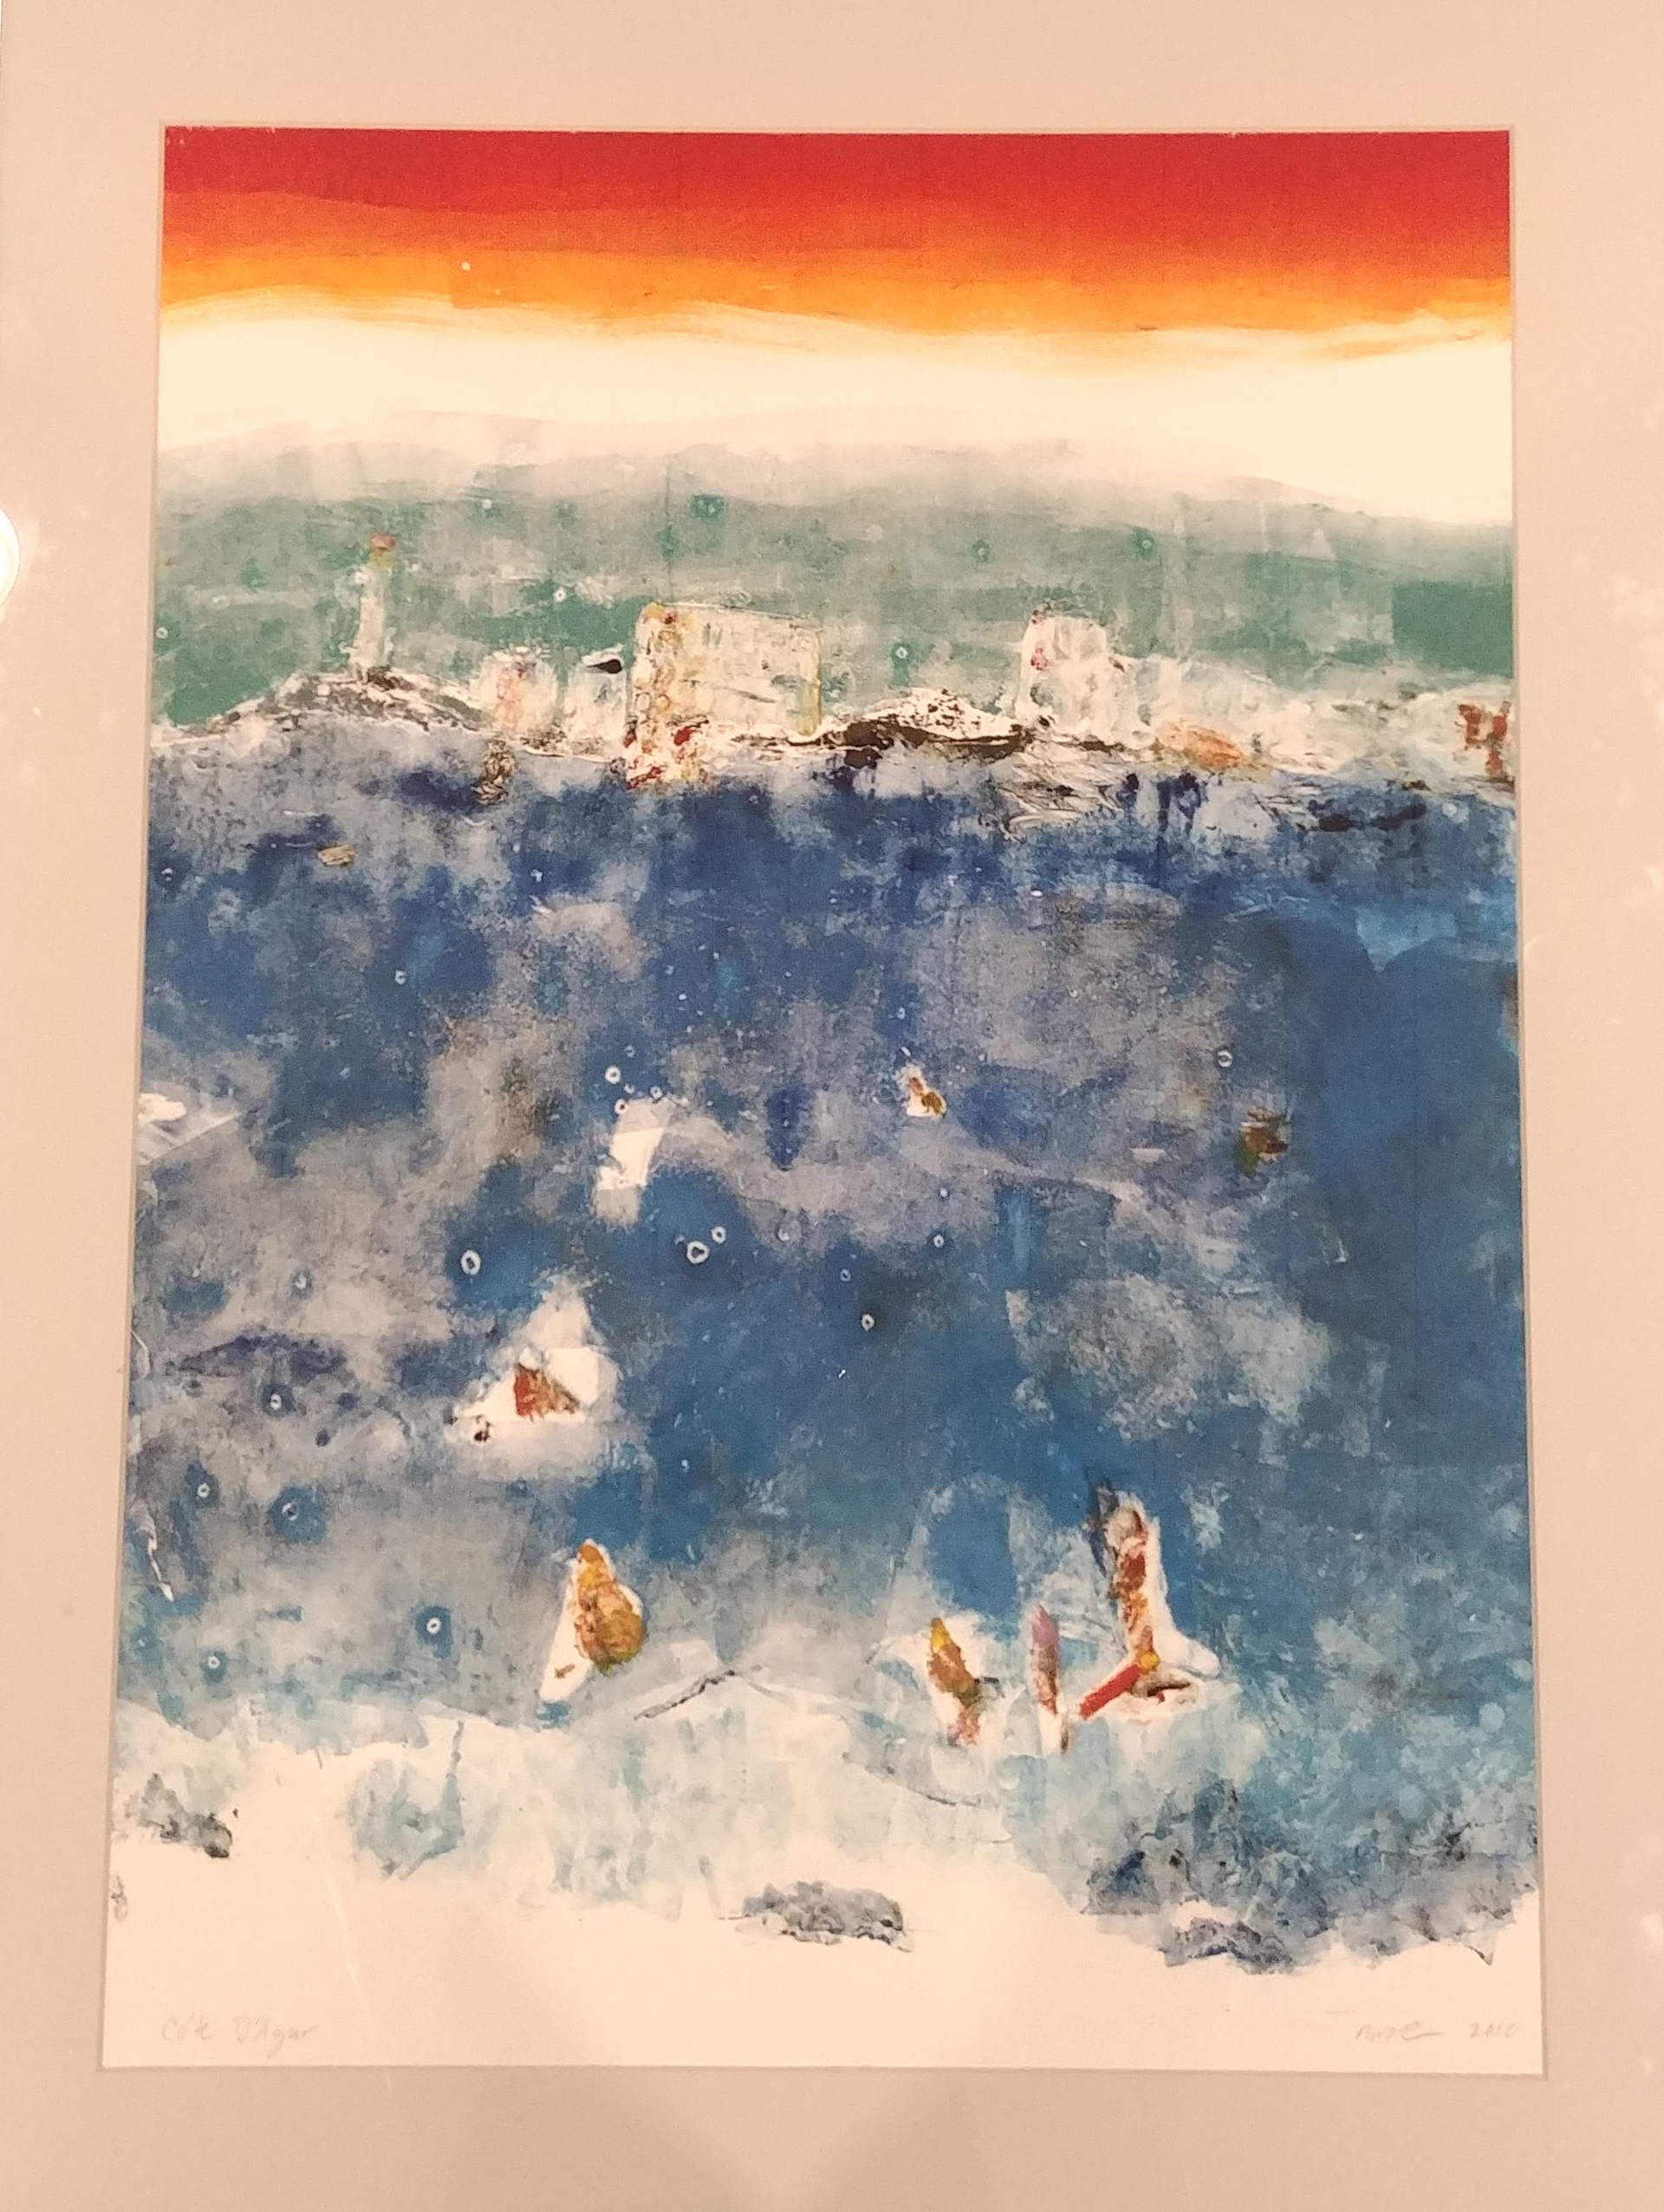 Cote D' Azur by Mary Volm (Carlton, OR)